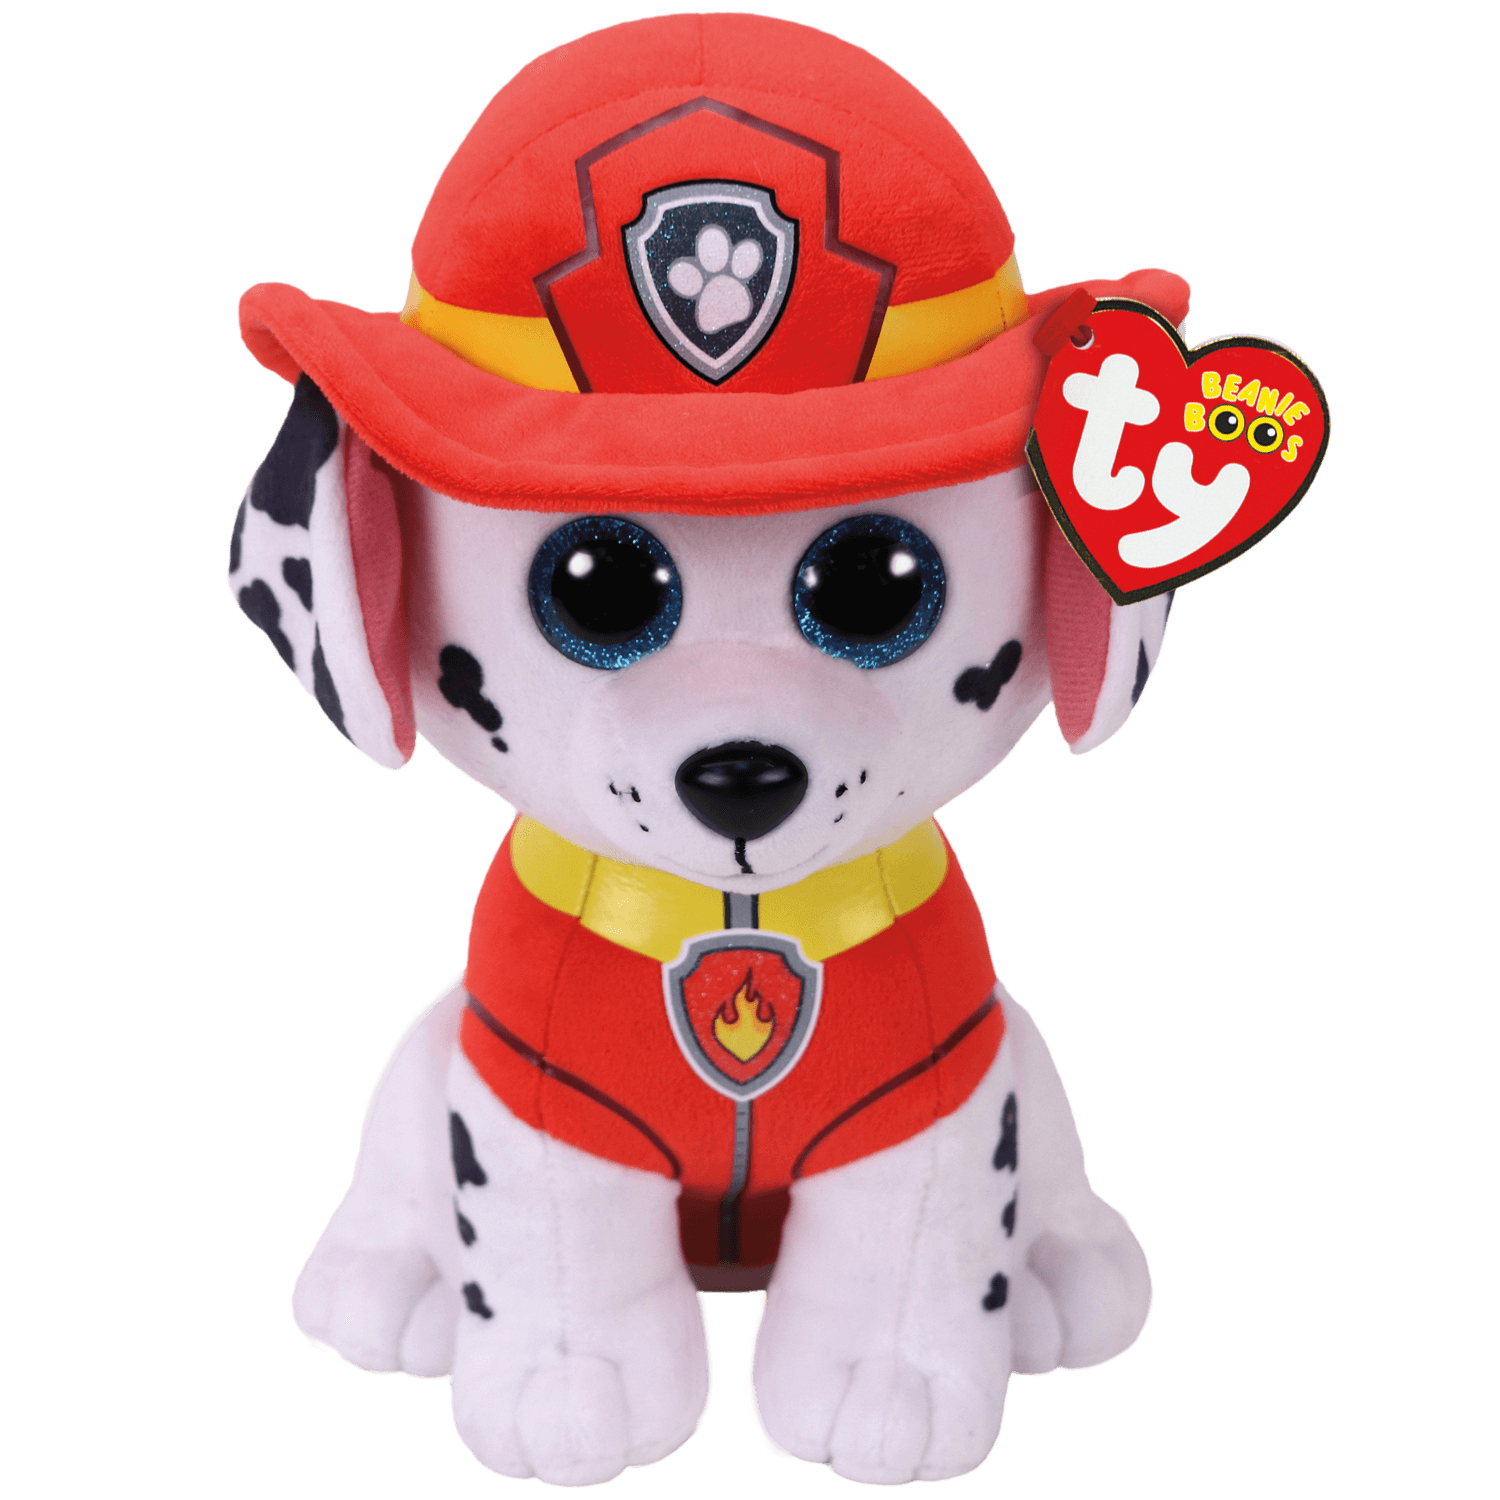 Marshall - Dalmatian Medium From Paw Patrol